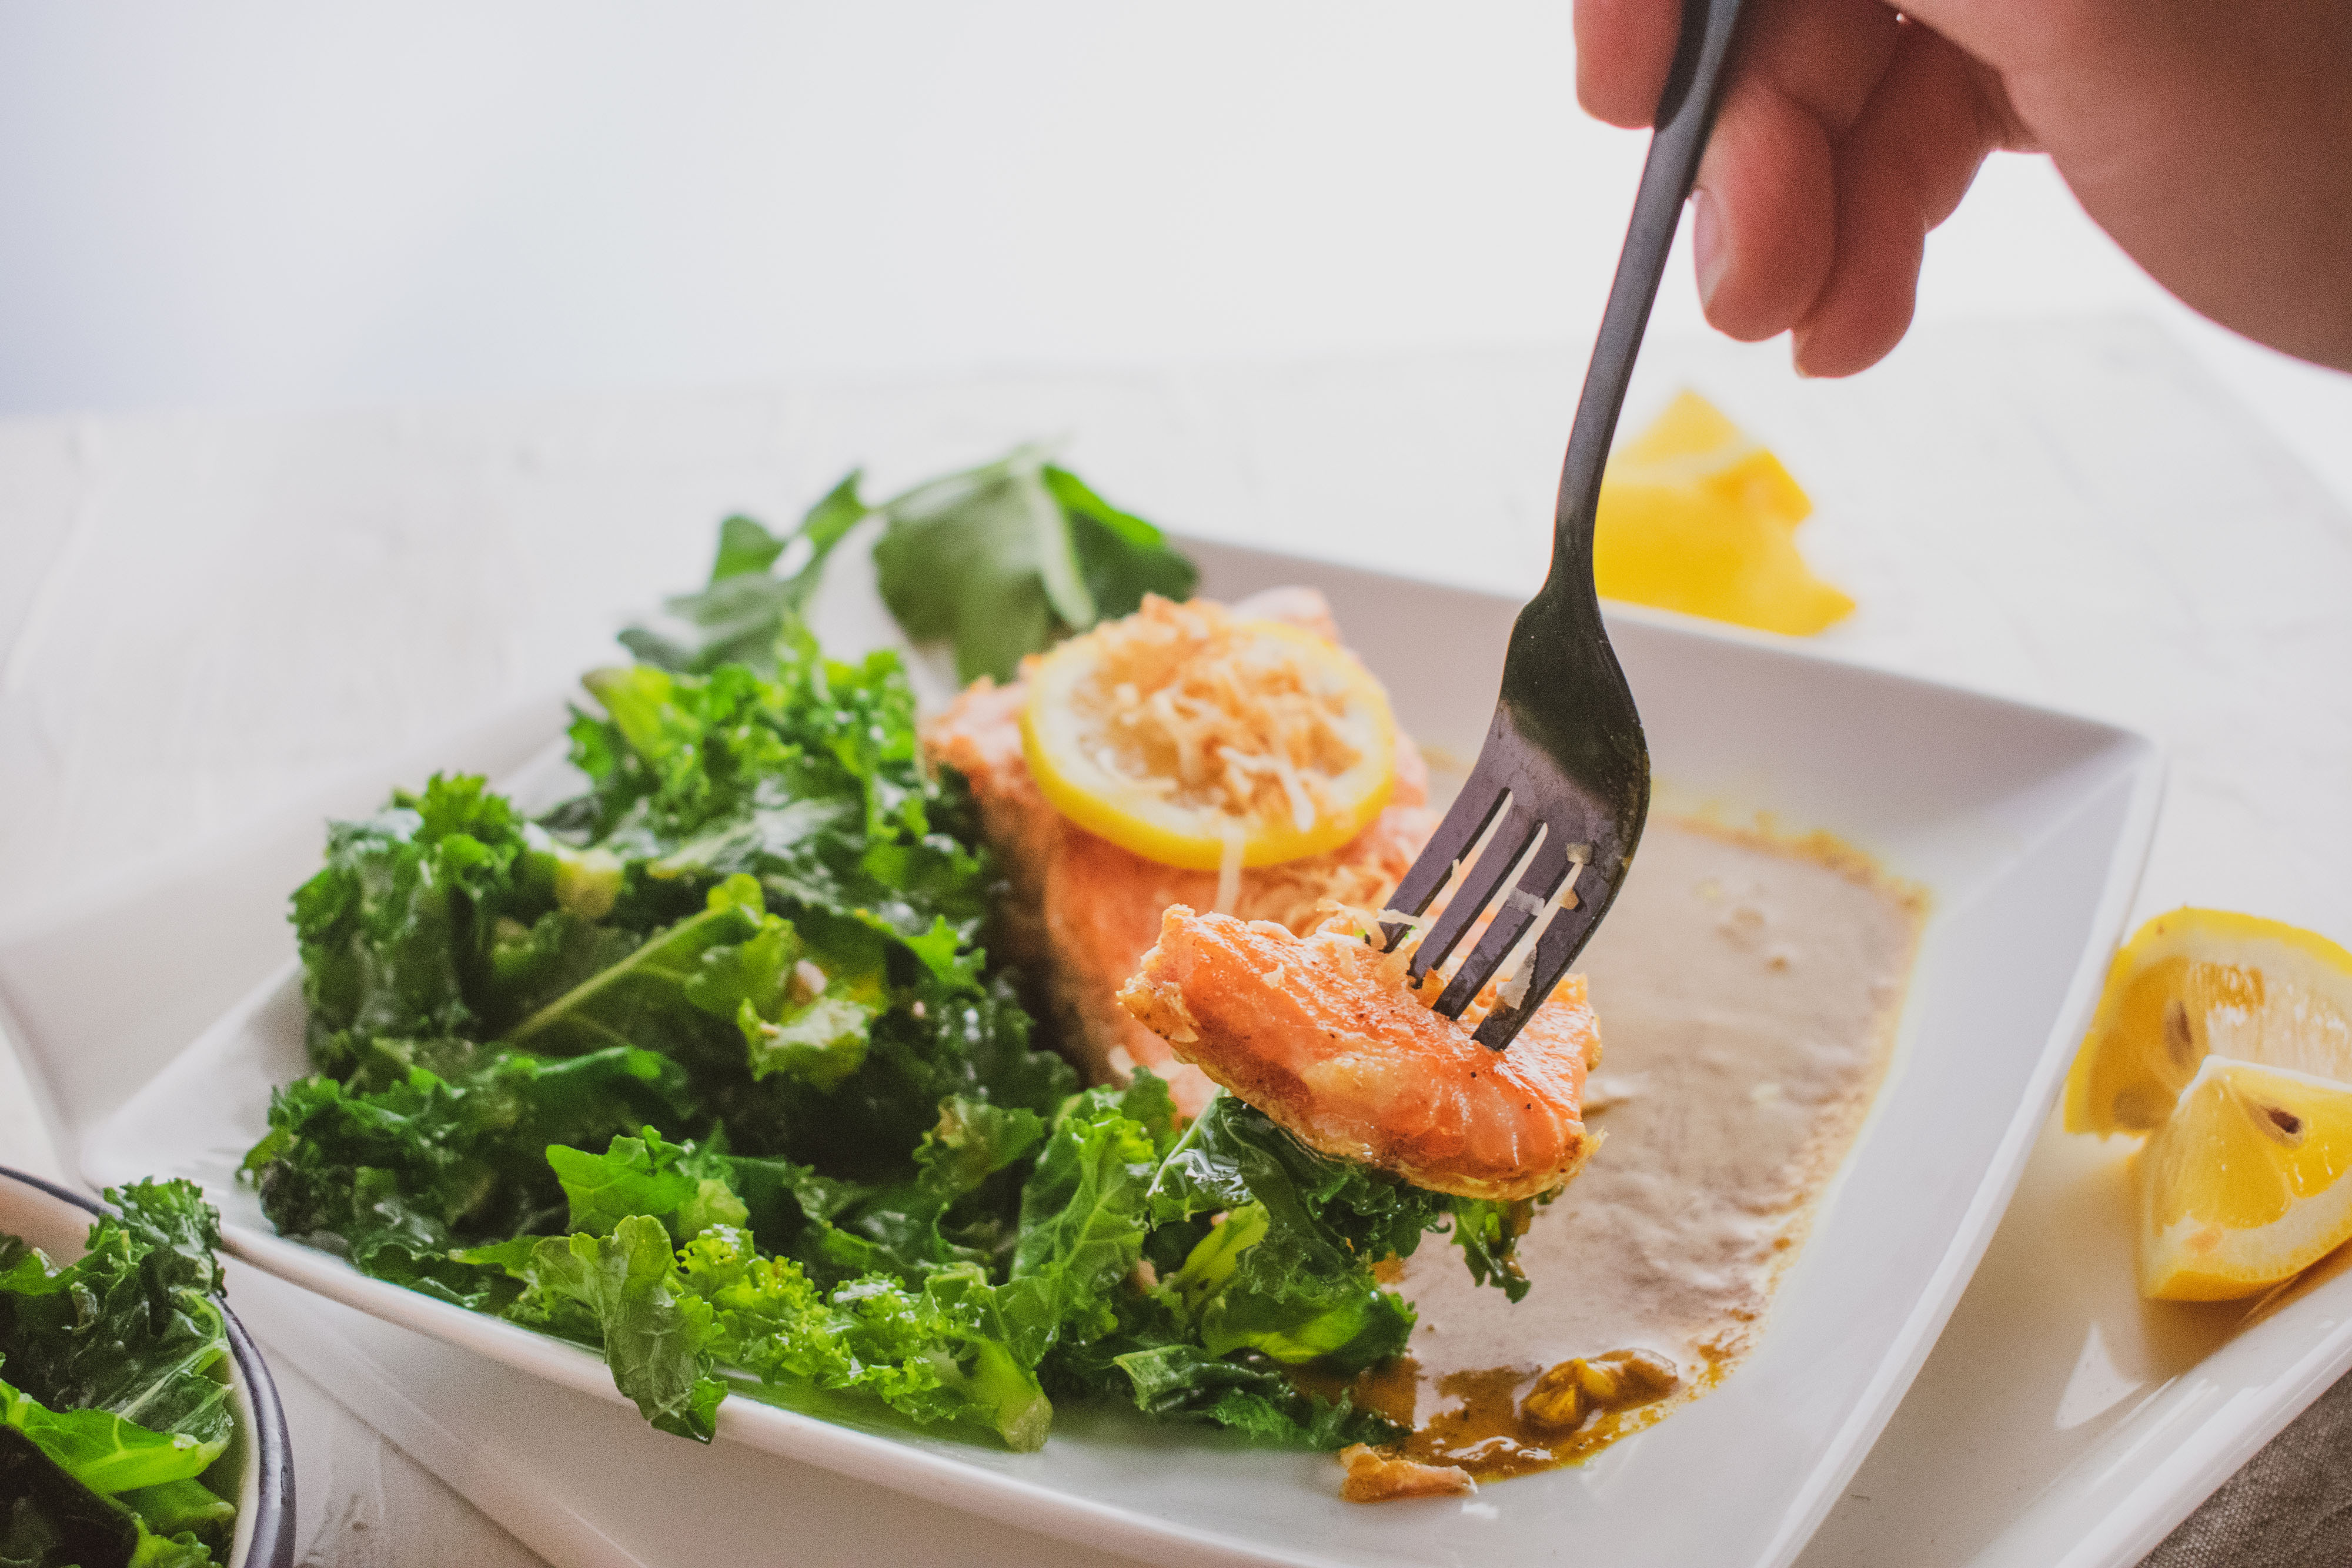 Salmon filet in curry and and kale salad on the side on a white surface with a fork scooping up a bite